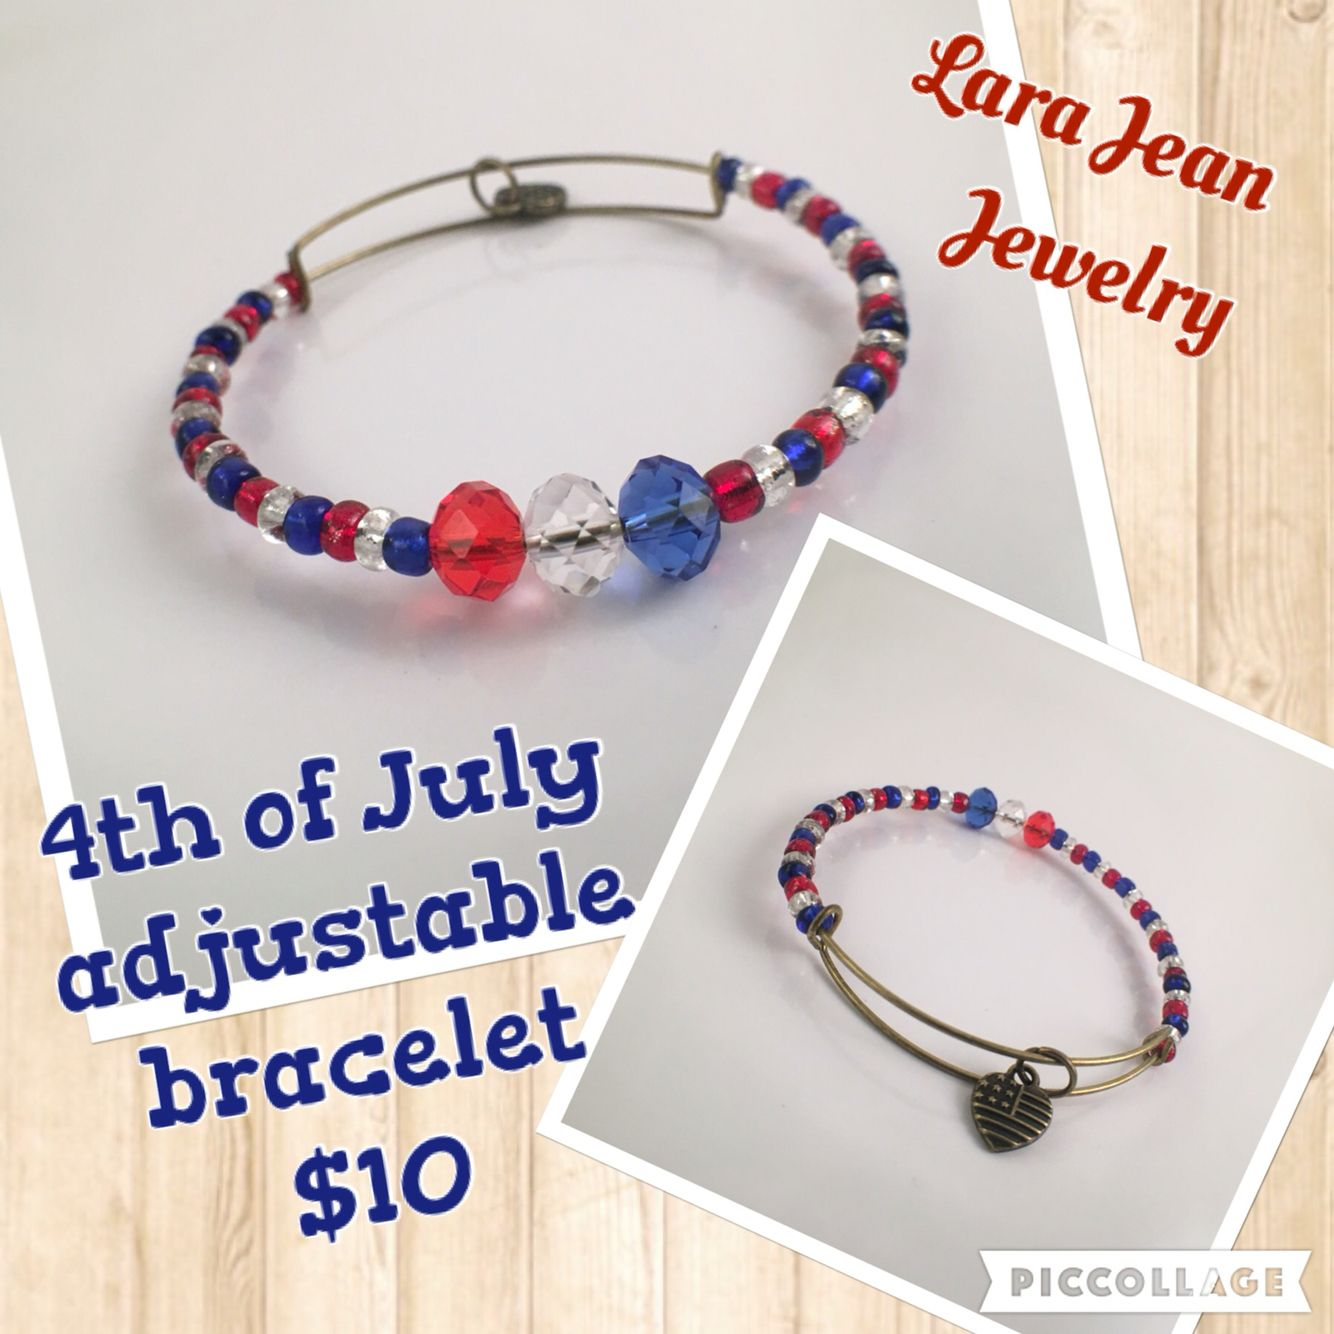 Grab your 4th of July bracelet for $10 BUT if you apply the promo code JUNE15 upon checkout, you will get 15% off your purchase and this lovely bracelet will only be $8.50! Buy now! Limited stocks only! www.larajeanjewelry.com #adjustable #bracelet #independenceday #4thofJuly #red #white #blue #USA #charm #bronze